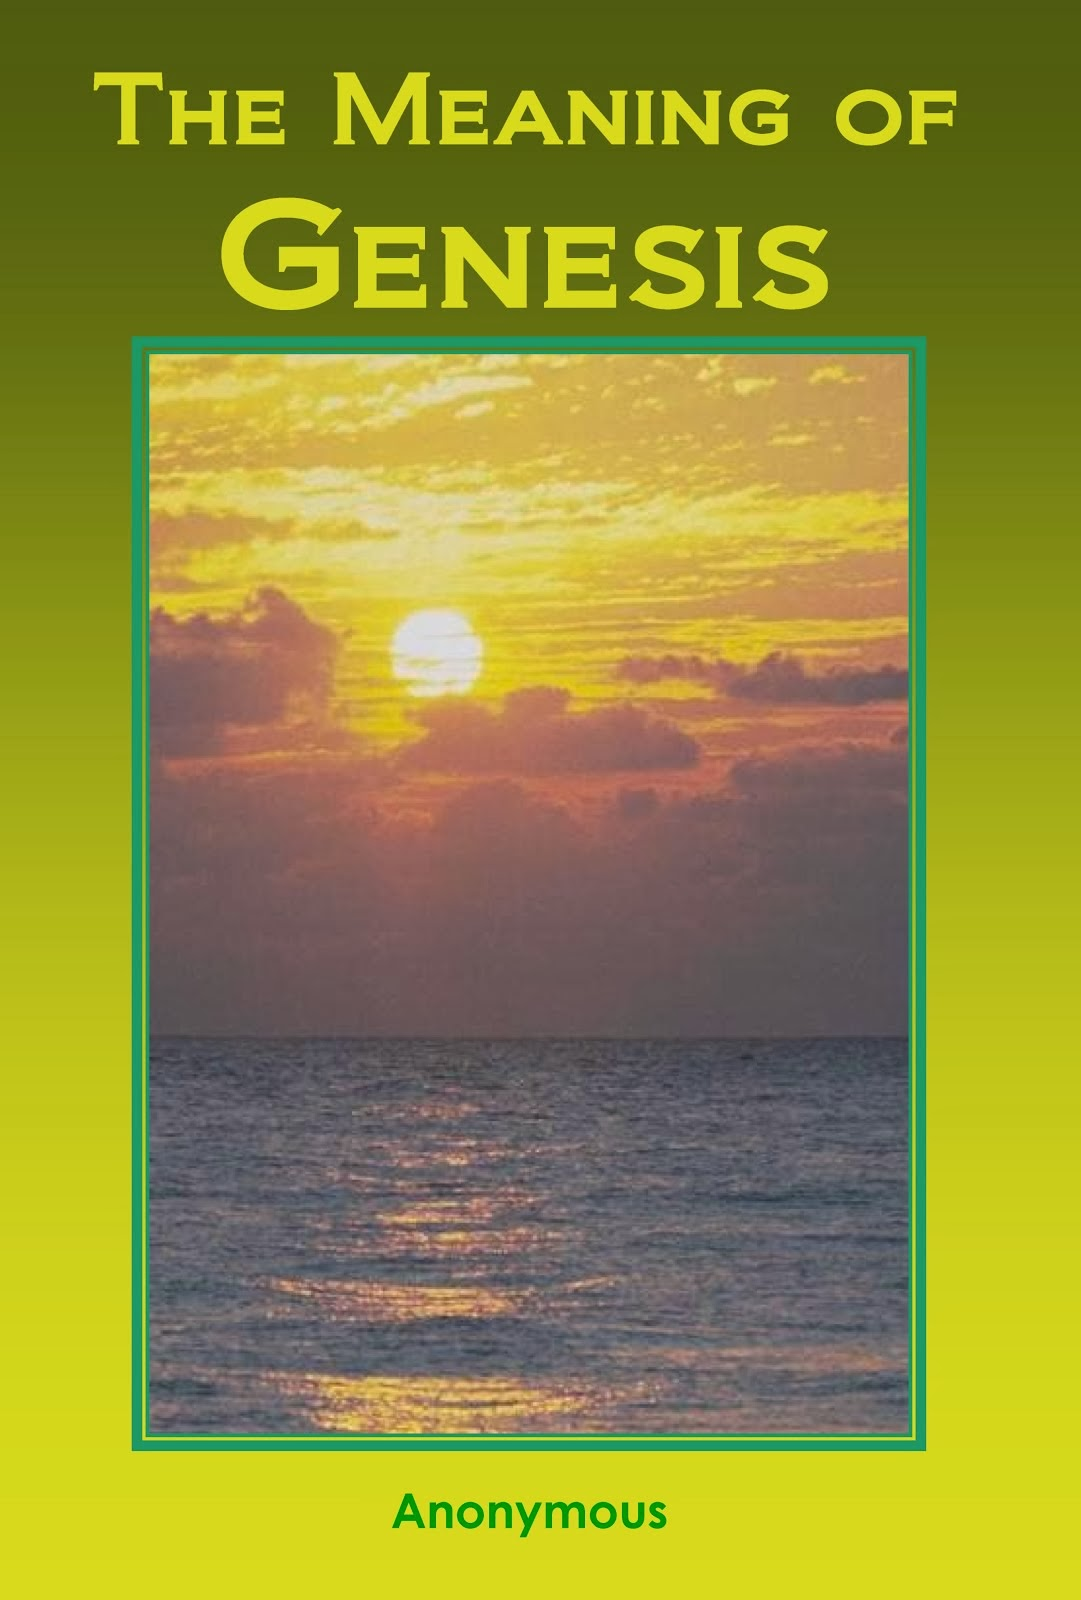 Meaning of Genesis (Free Book)